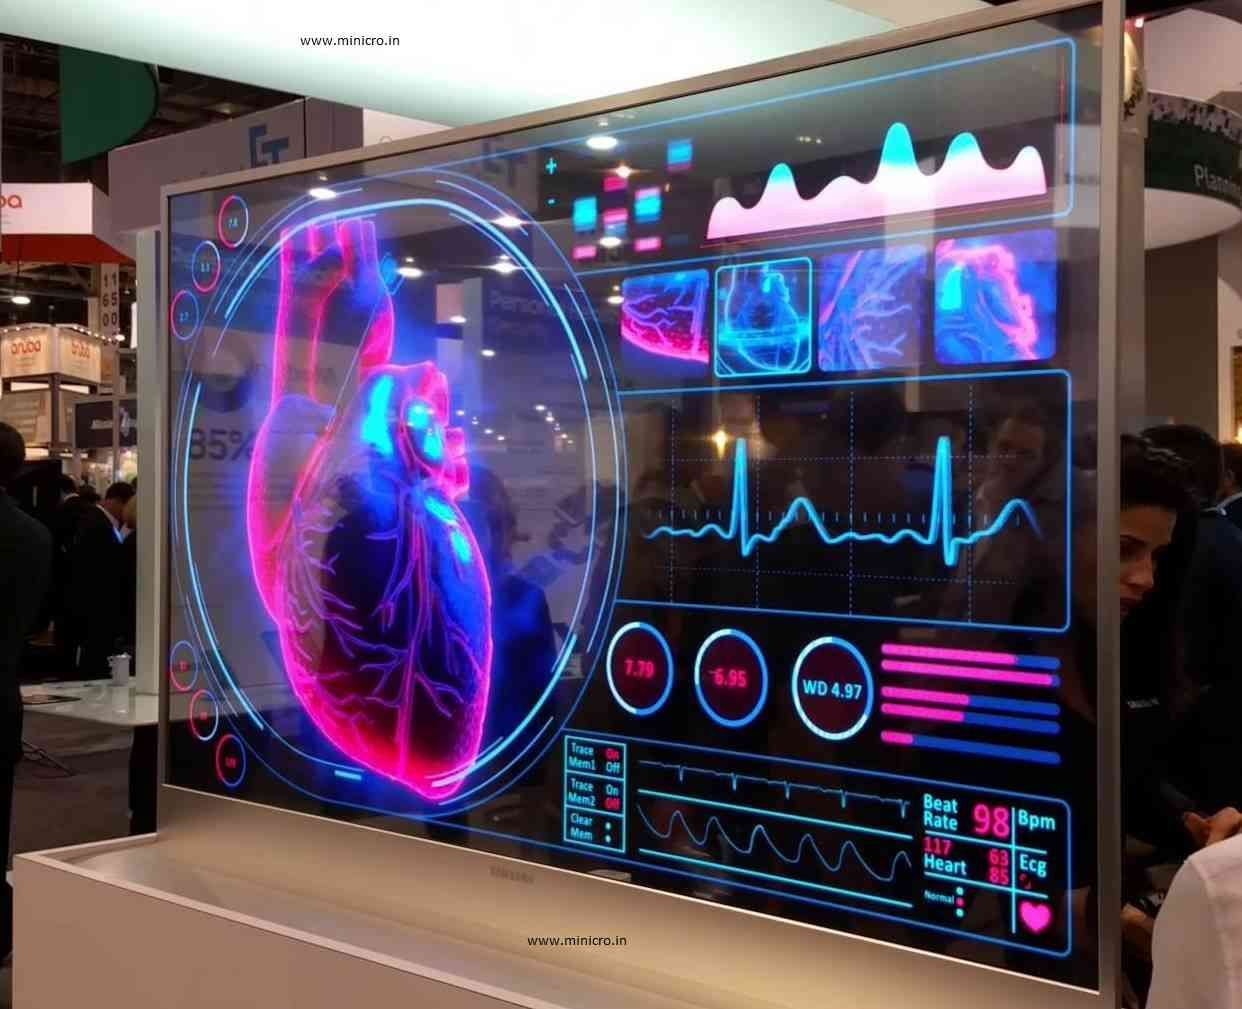 Global United States European Union And China Transparent Oled Displays Market Research Report 2019 2025 24 Market Reports Futuristic Technology Futuristic Digital Signage